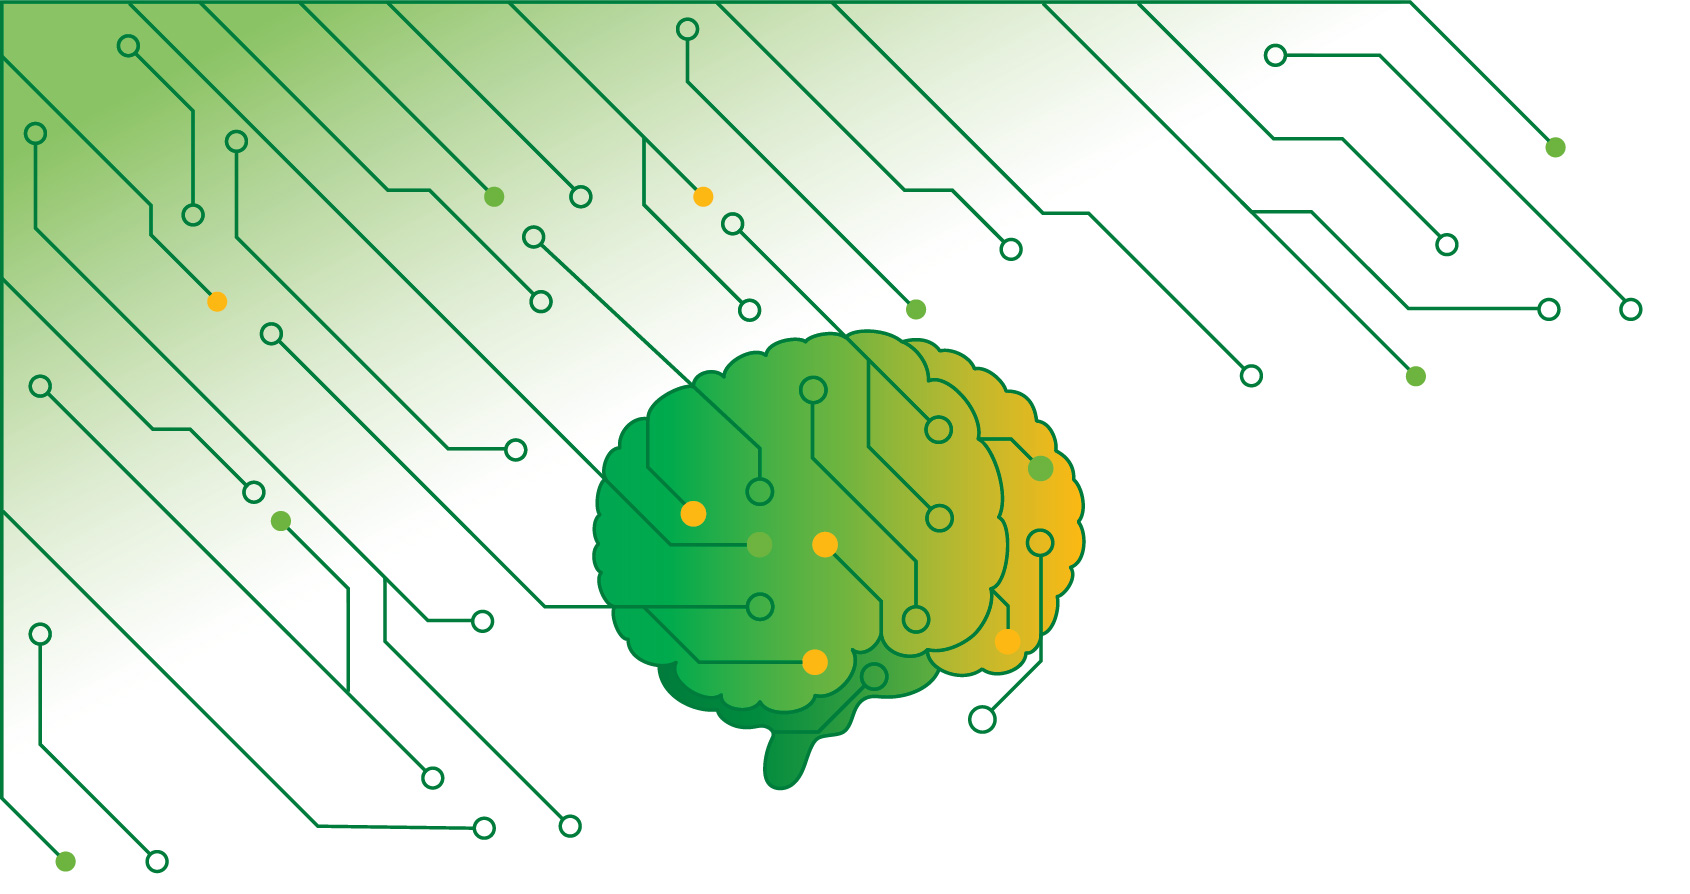 Brain circuit board illustration